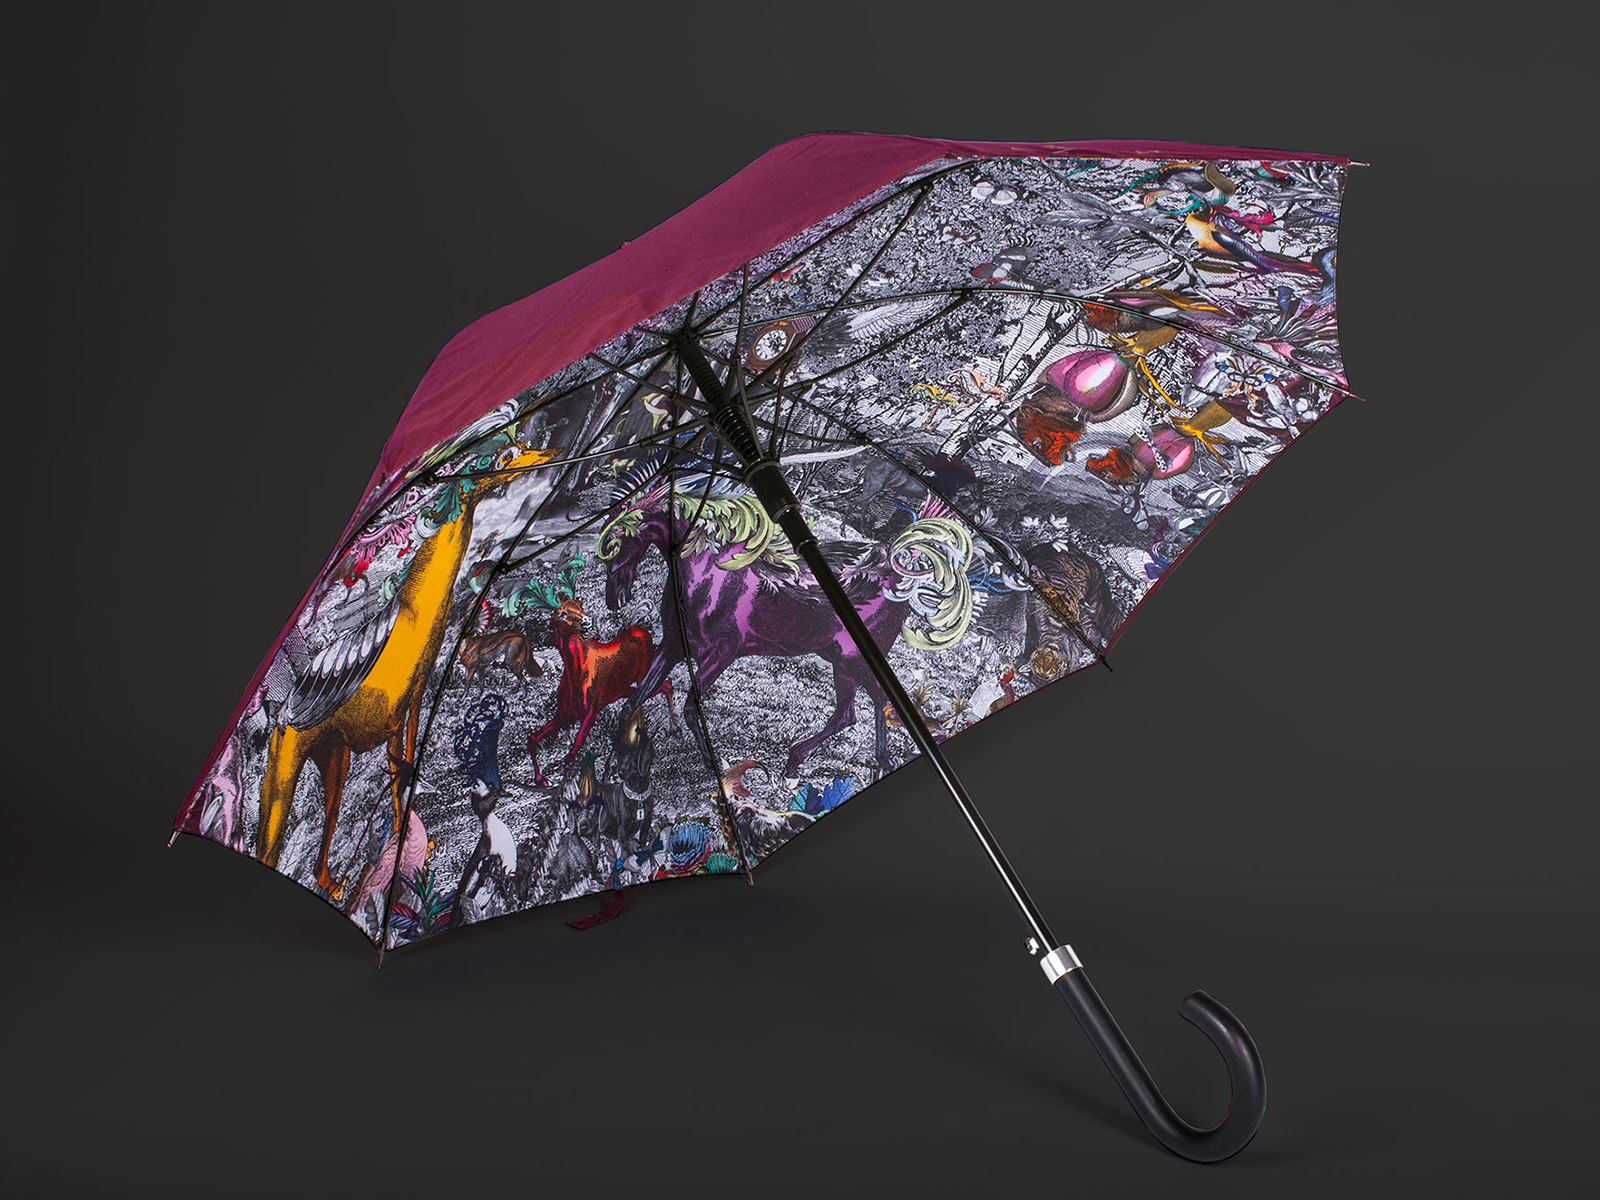 KSW Umbrella.jpg